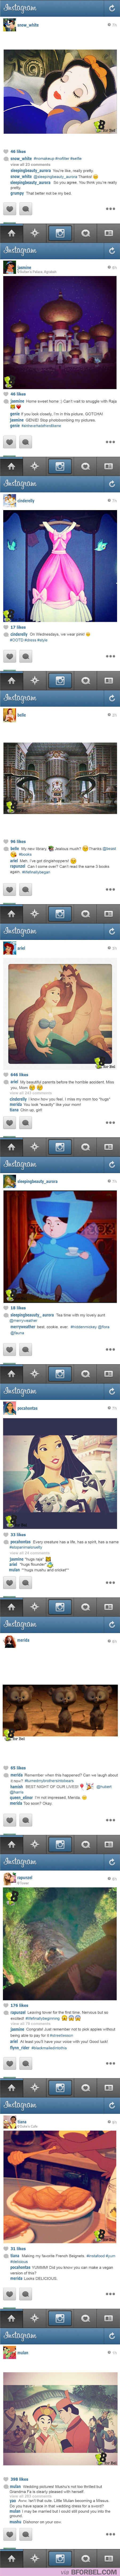 If Disney Princesses Had Instagram, The World Would Be A Better Place - BuzzFeed Mobile